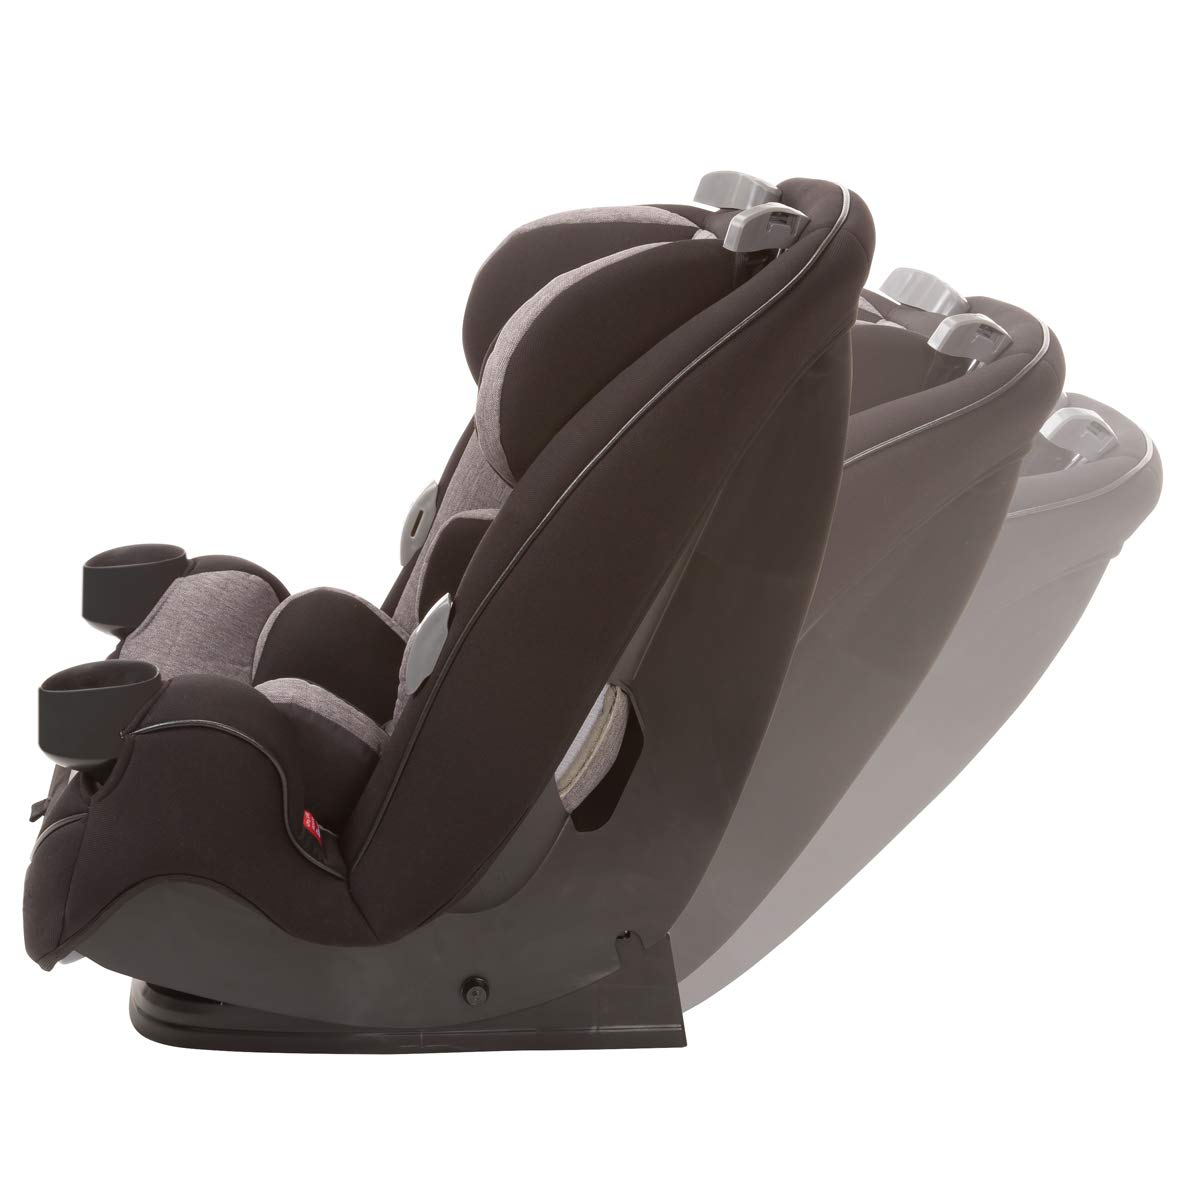 Safety 1st Grow and Go 3-in-1 Convertible Car Seat, Harvest Moon by Safety 1st (Image #2)